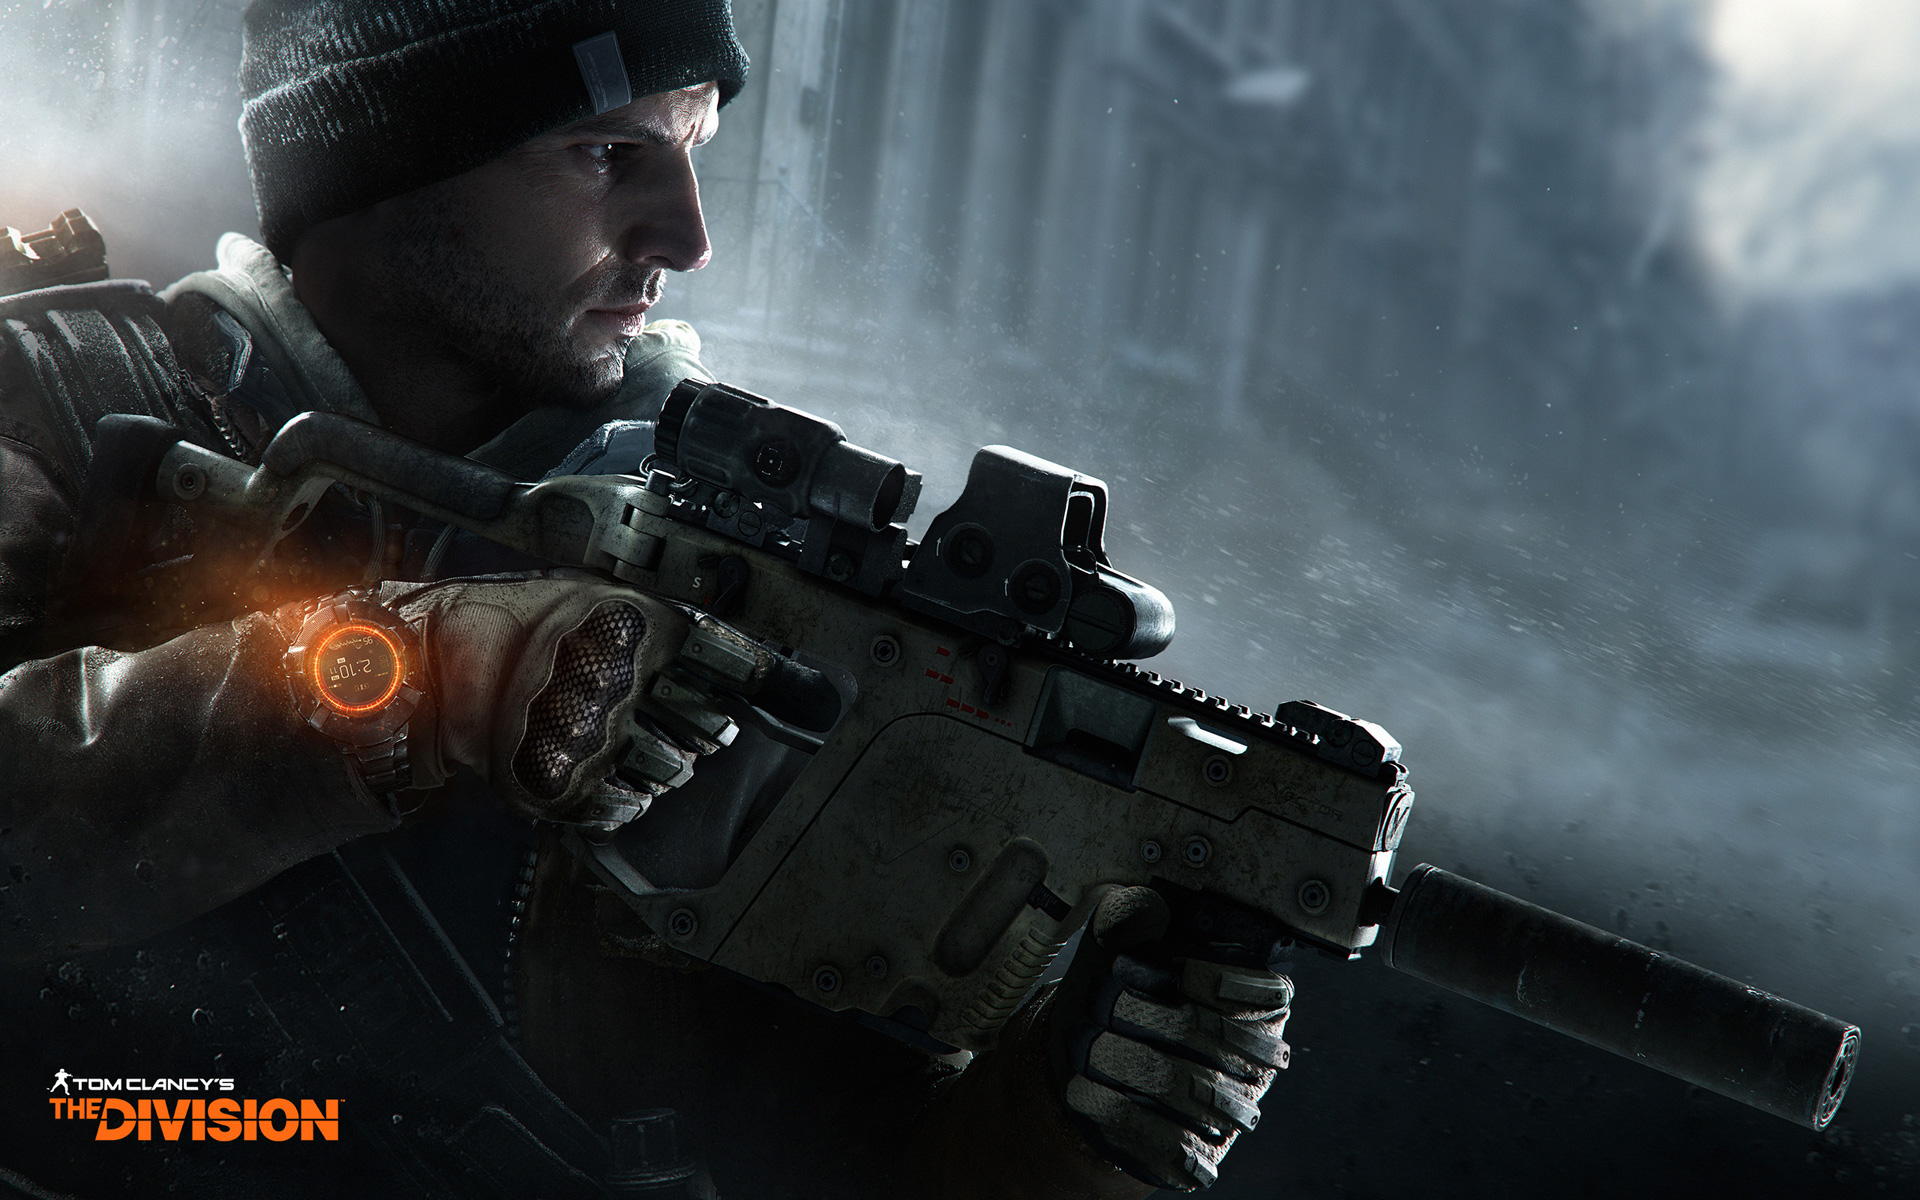 The Division Wallpaper in 1920x1200